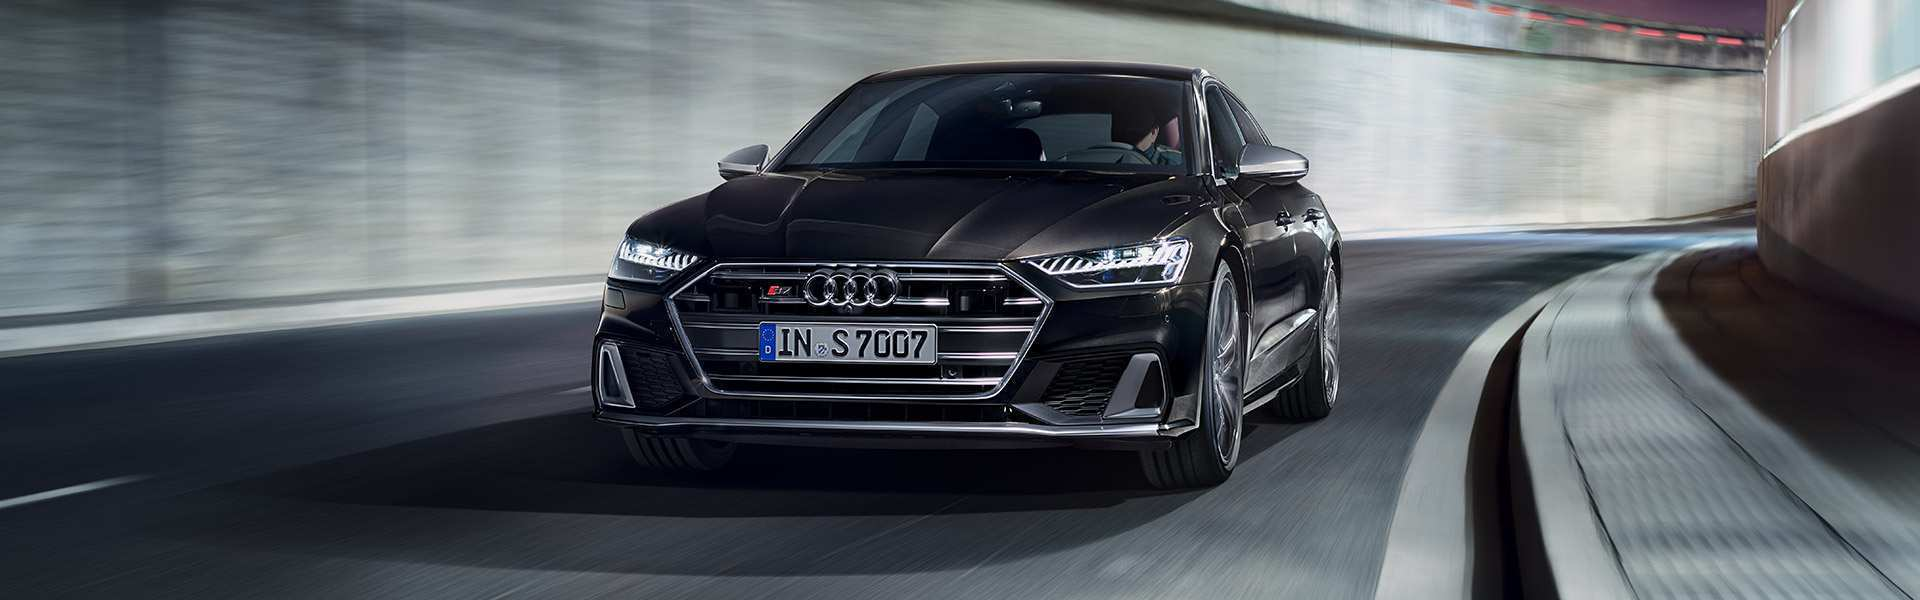 79 The Best 2020 All Audi A7 Speed Test